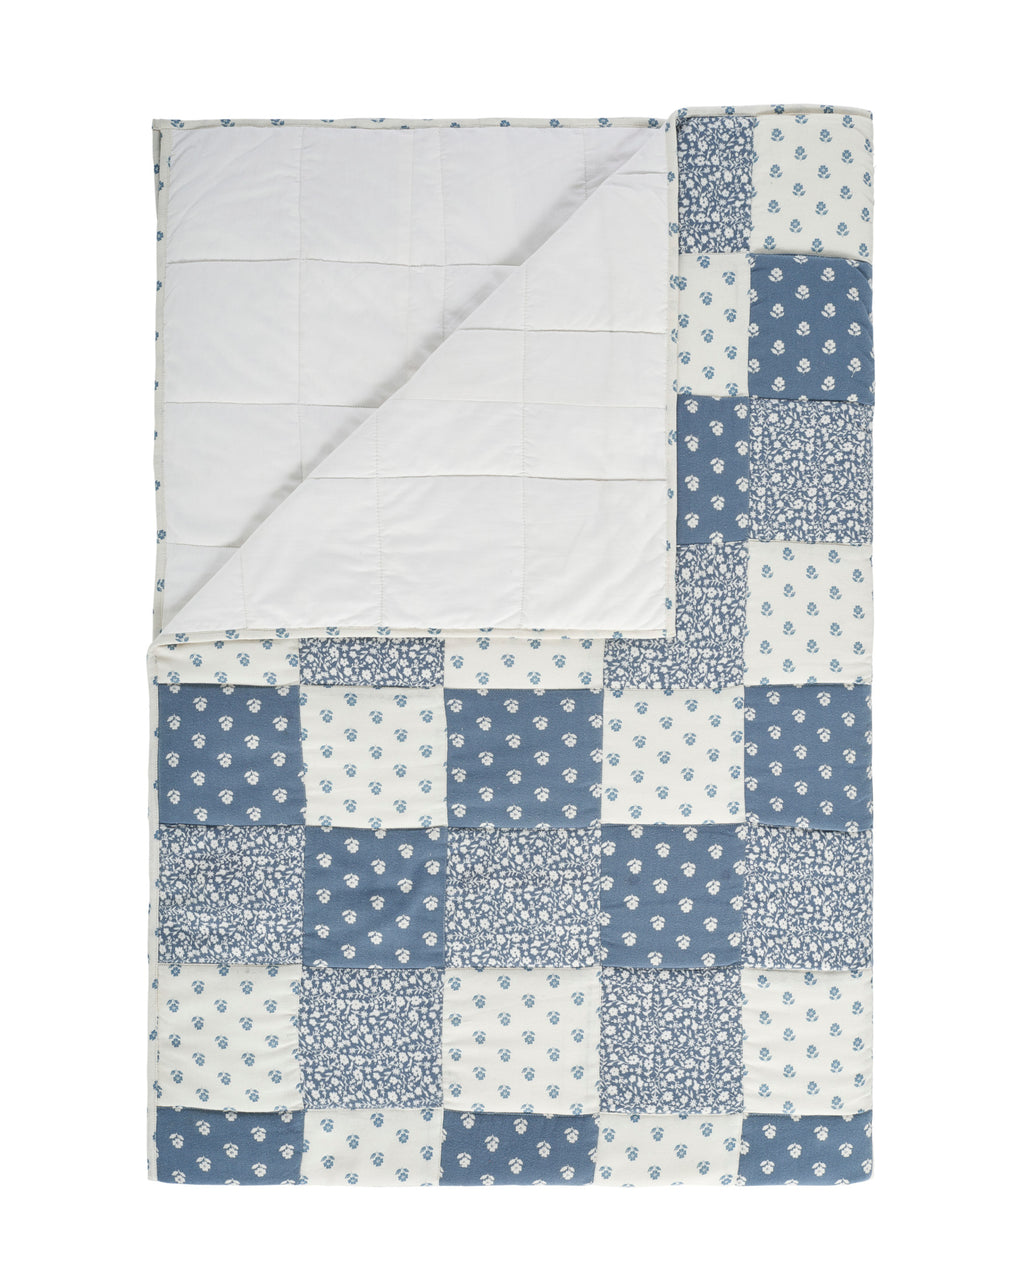 Patchwork quilt -small - blue floral